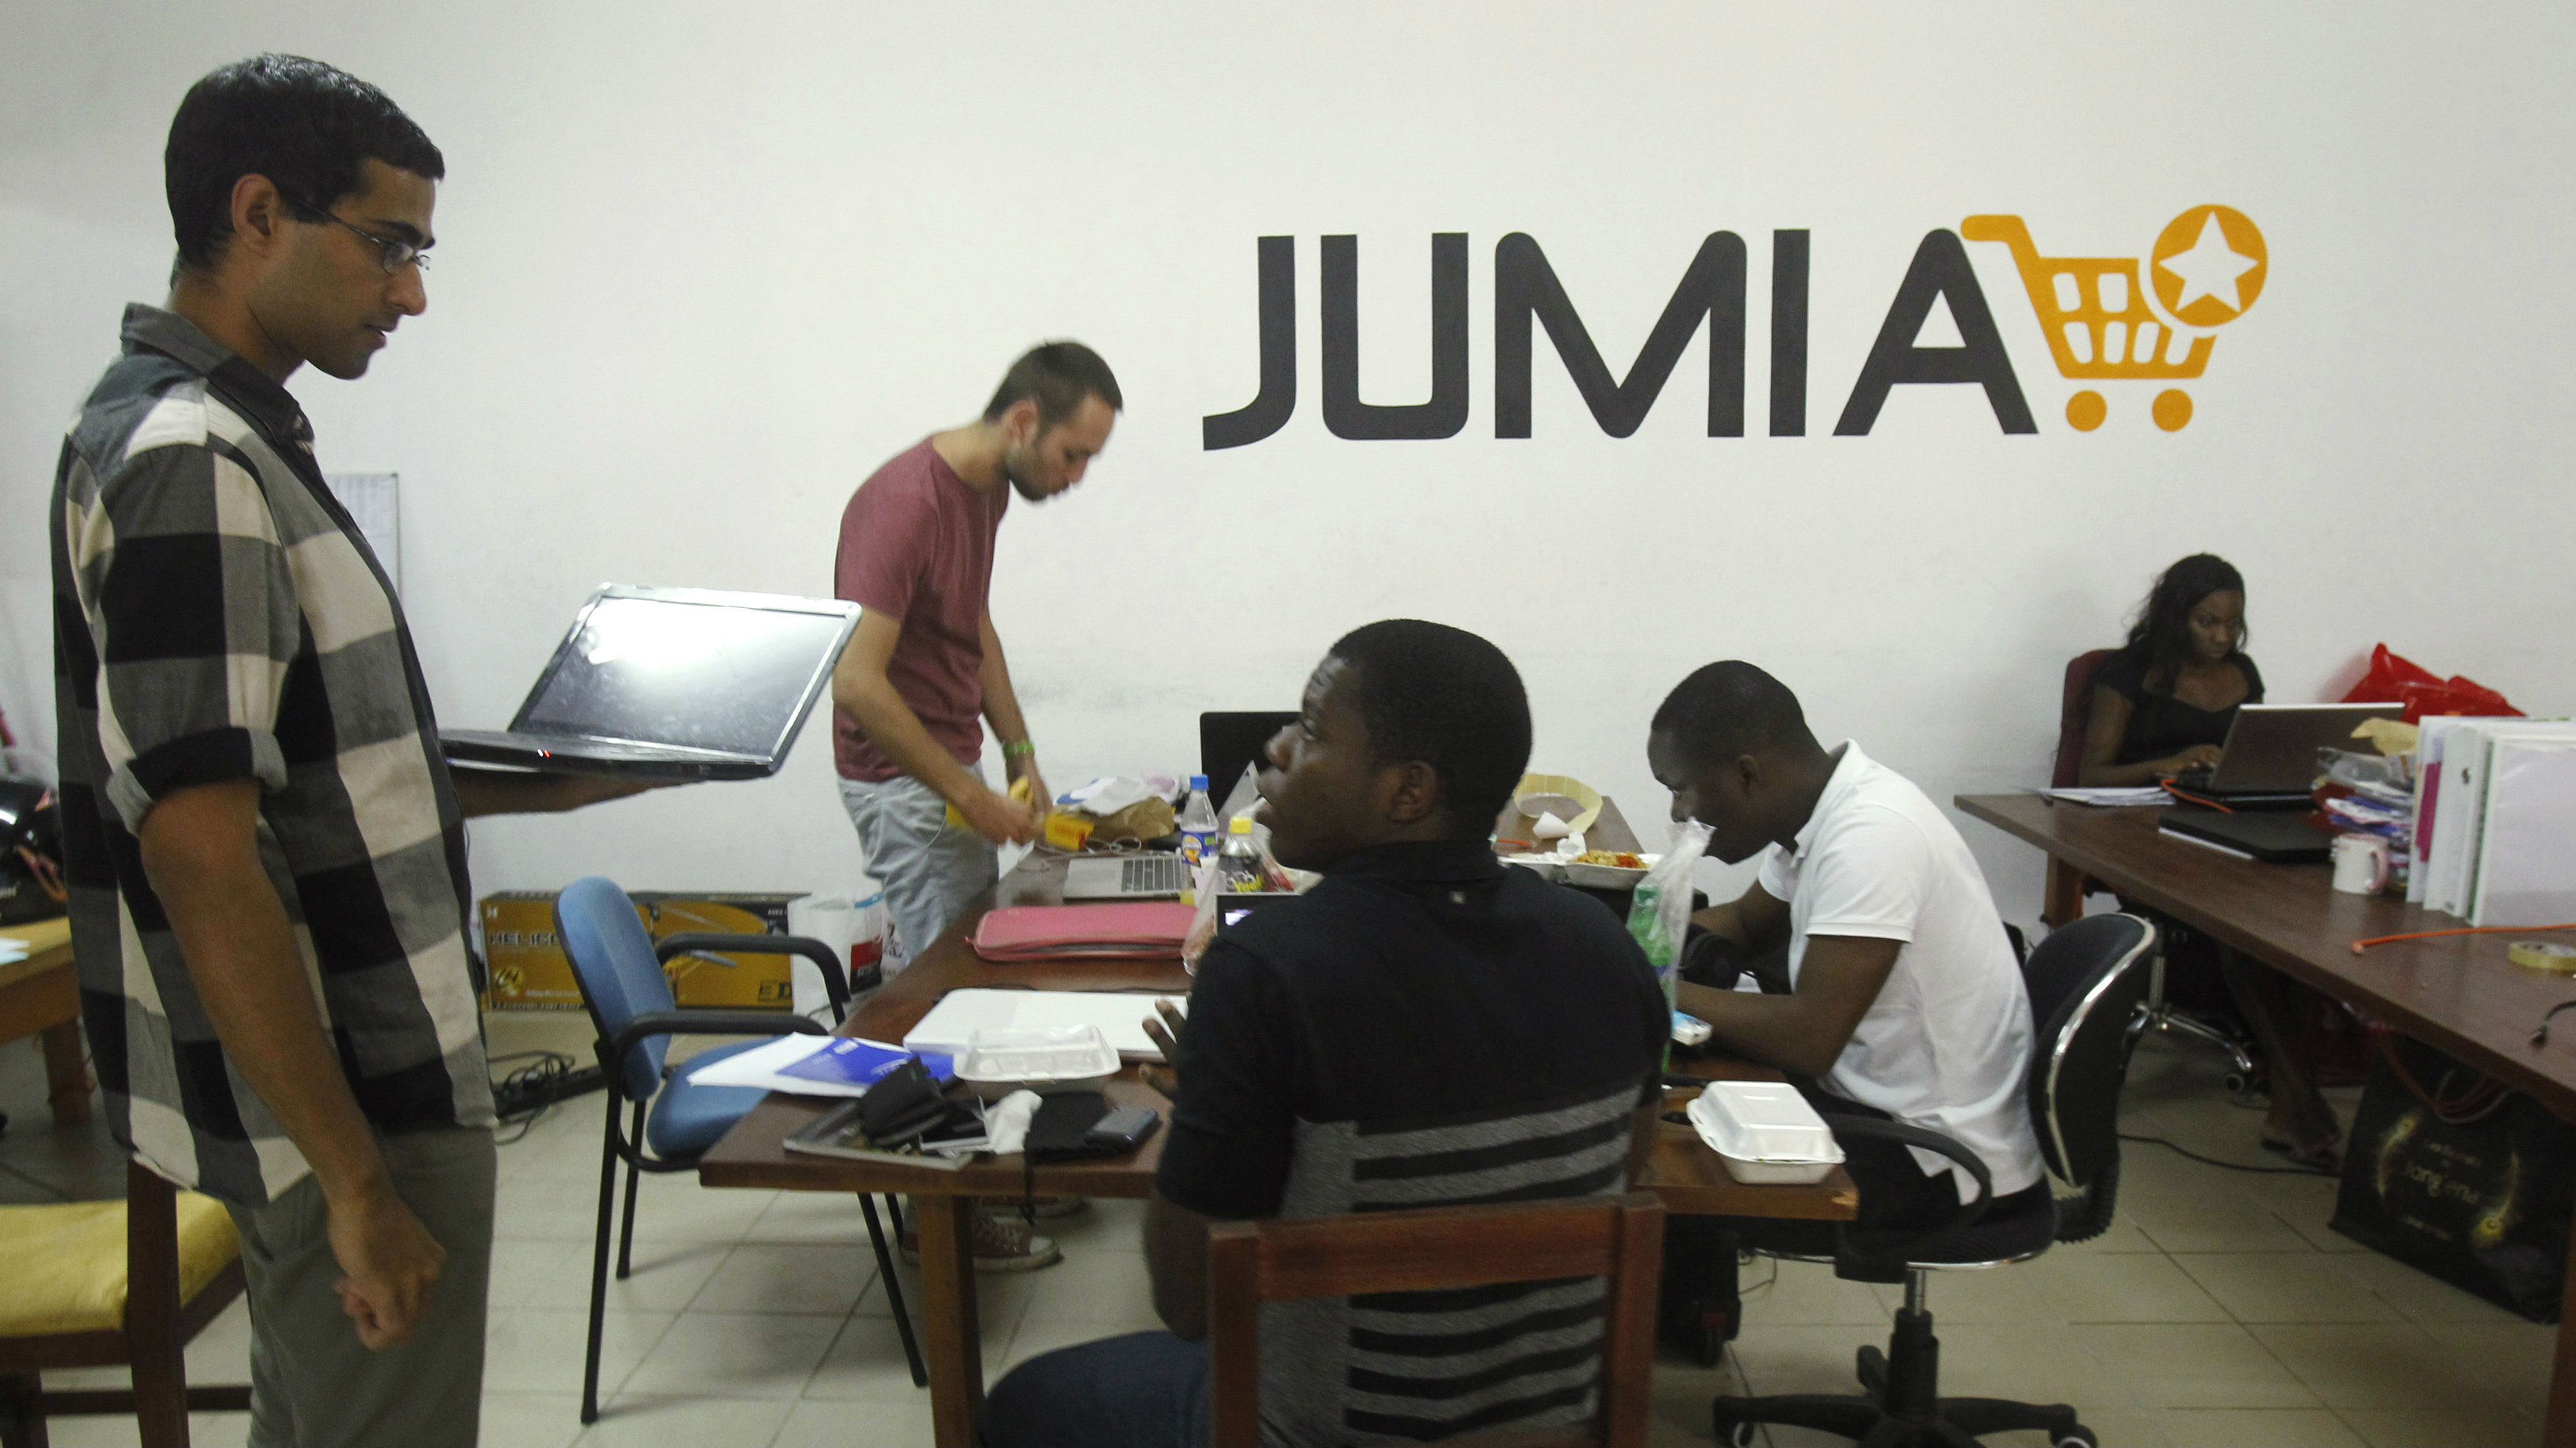 Africa e-commerce: Jumia files for IPO on New York Stock Exchange